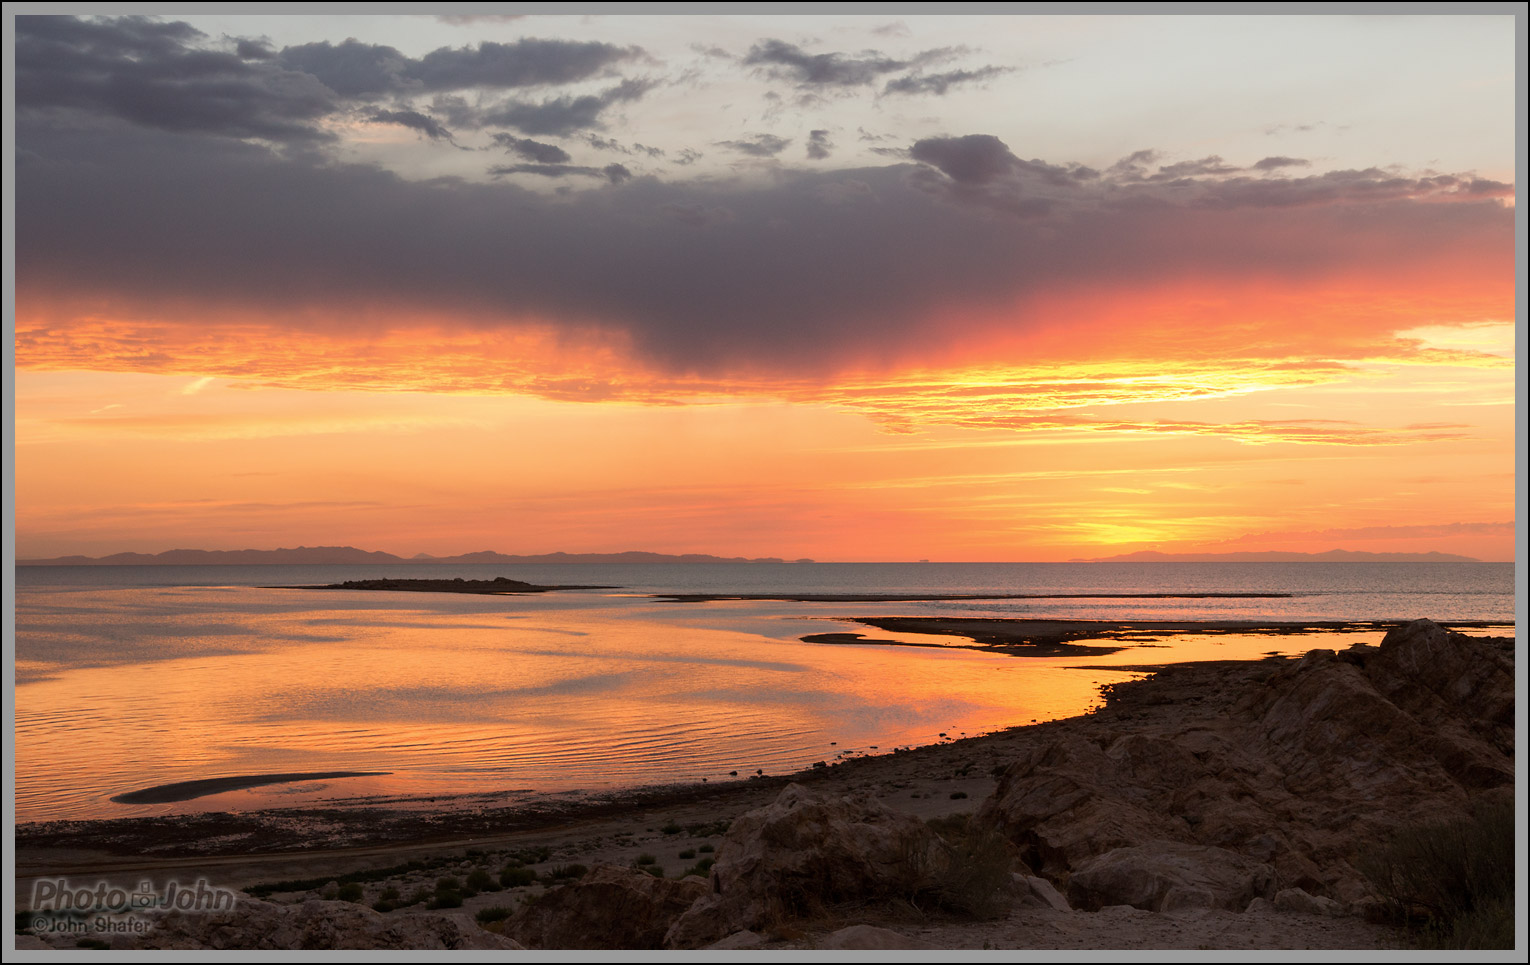 Sigma 18-35mm f/1.8 - Great Salt Lake Sunset Sample Photo